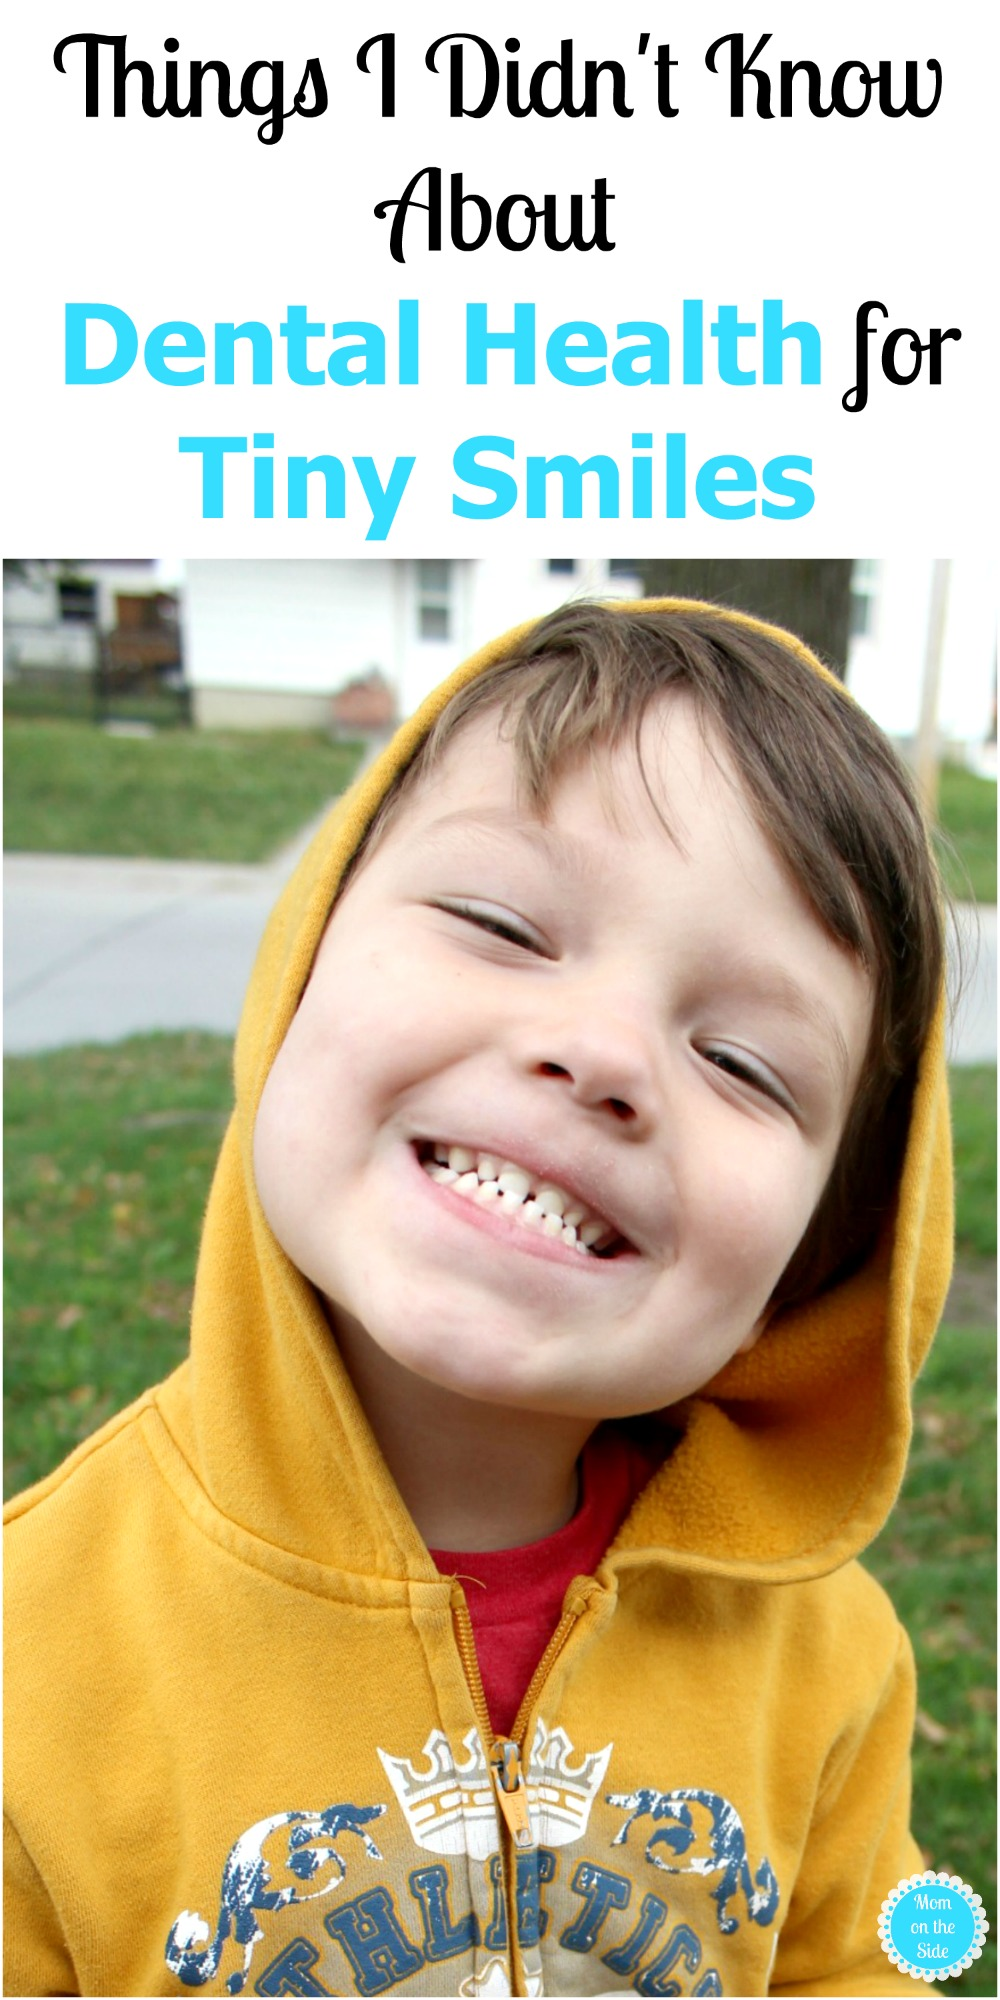 Things I Didn't Know About Dental Health for Tiny Smiles in Kids